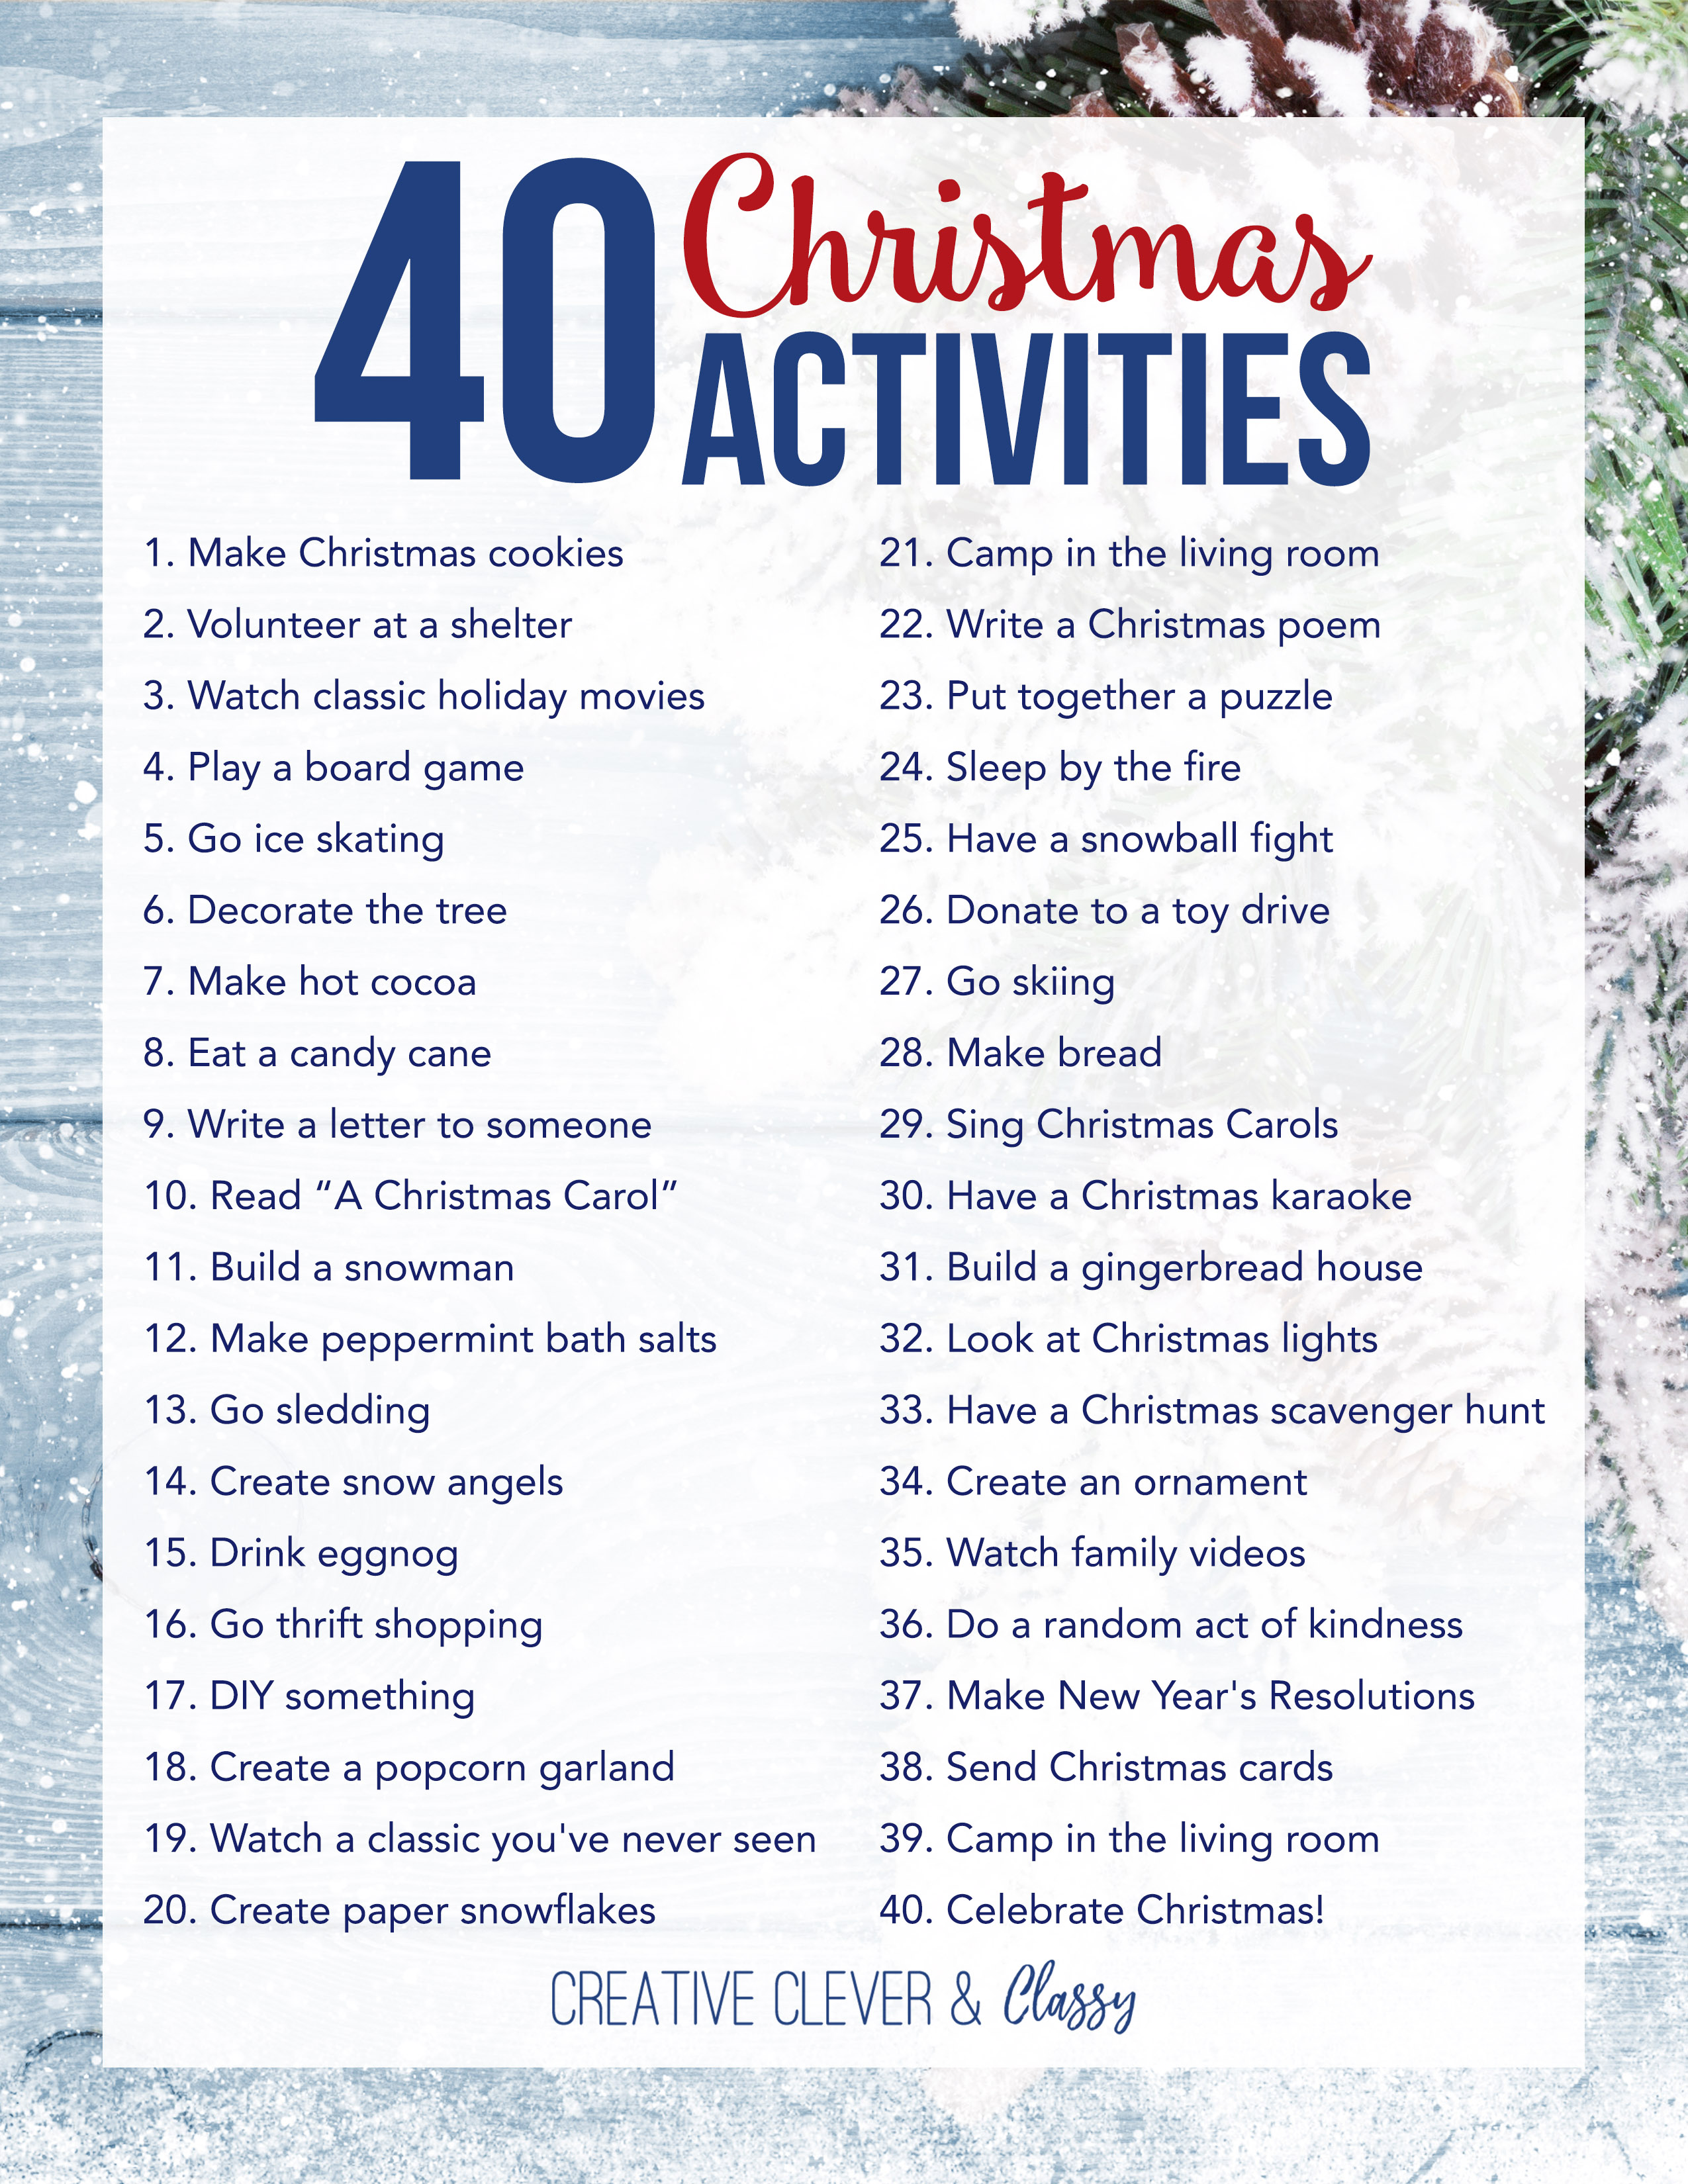 40 christmas activities for the family